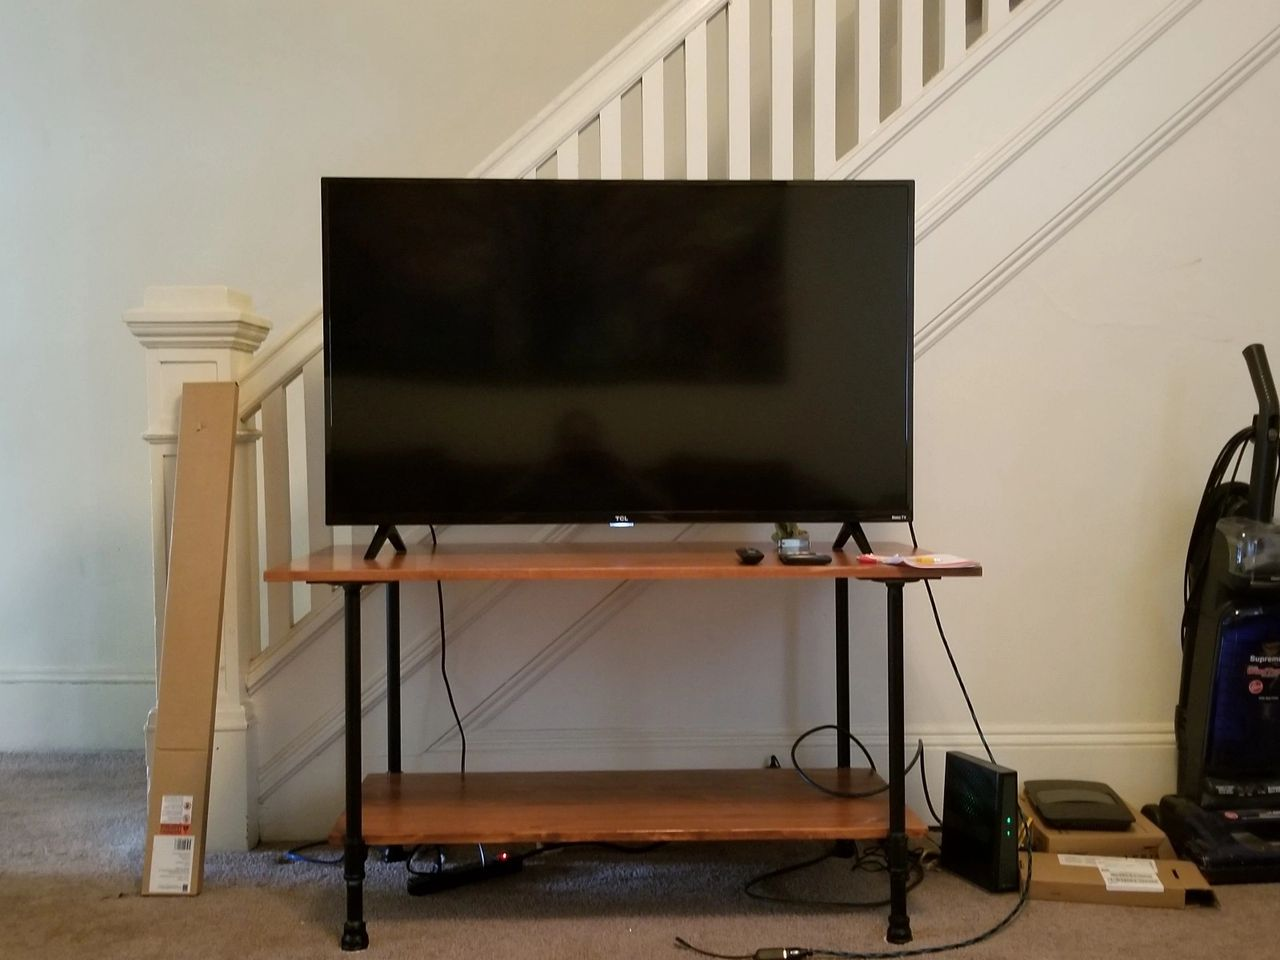 Vigilante justice exhibit C: a TV stand for streaming devices; photo supplied by James GoydoVigilante justice exhibit C: a TV stand for streaming devices; photo supplied by James Goydos, M.D.